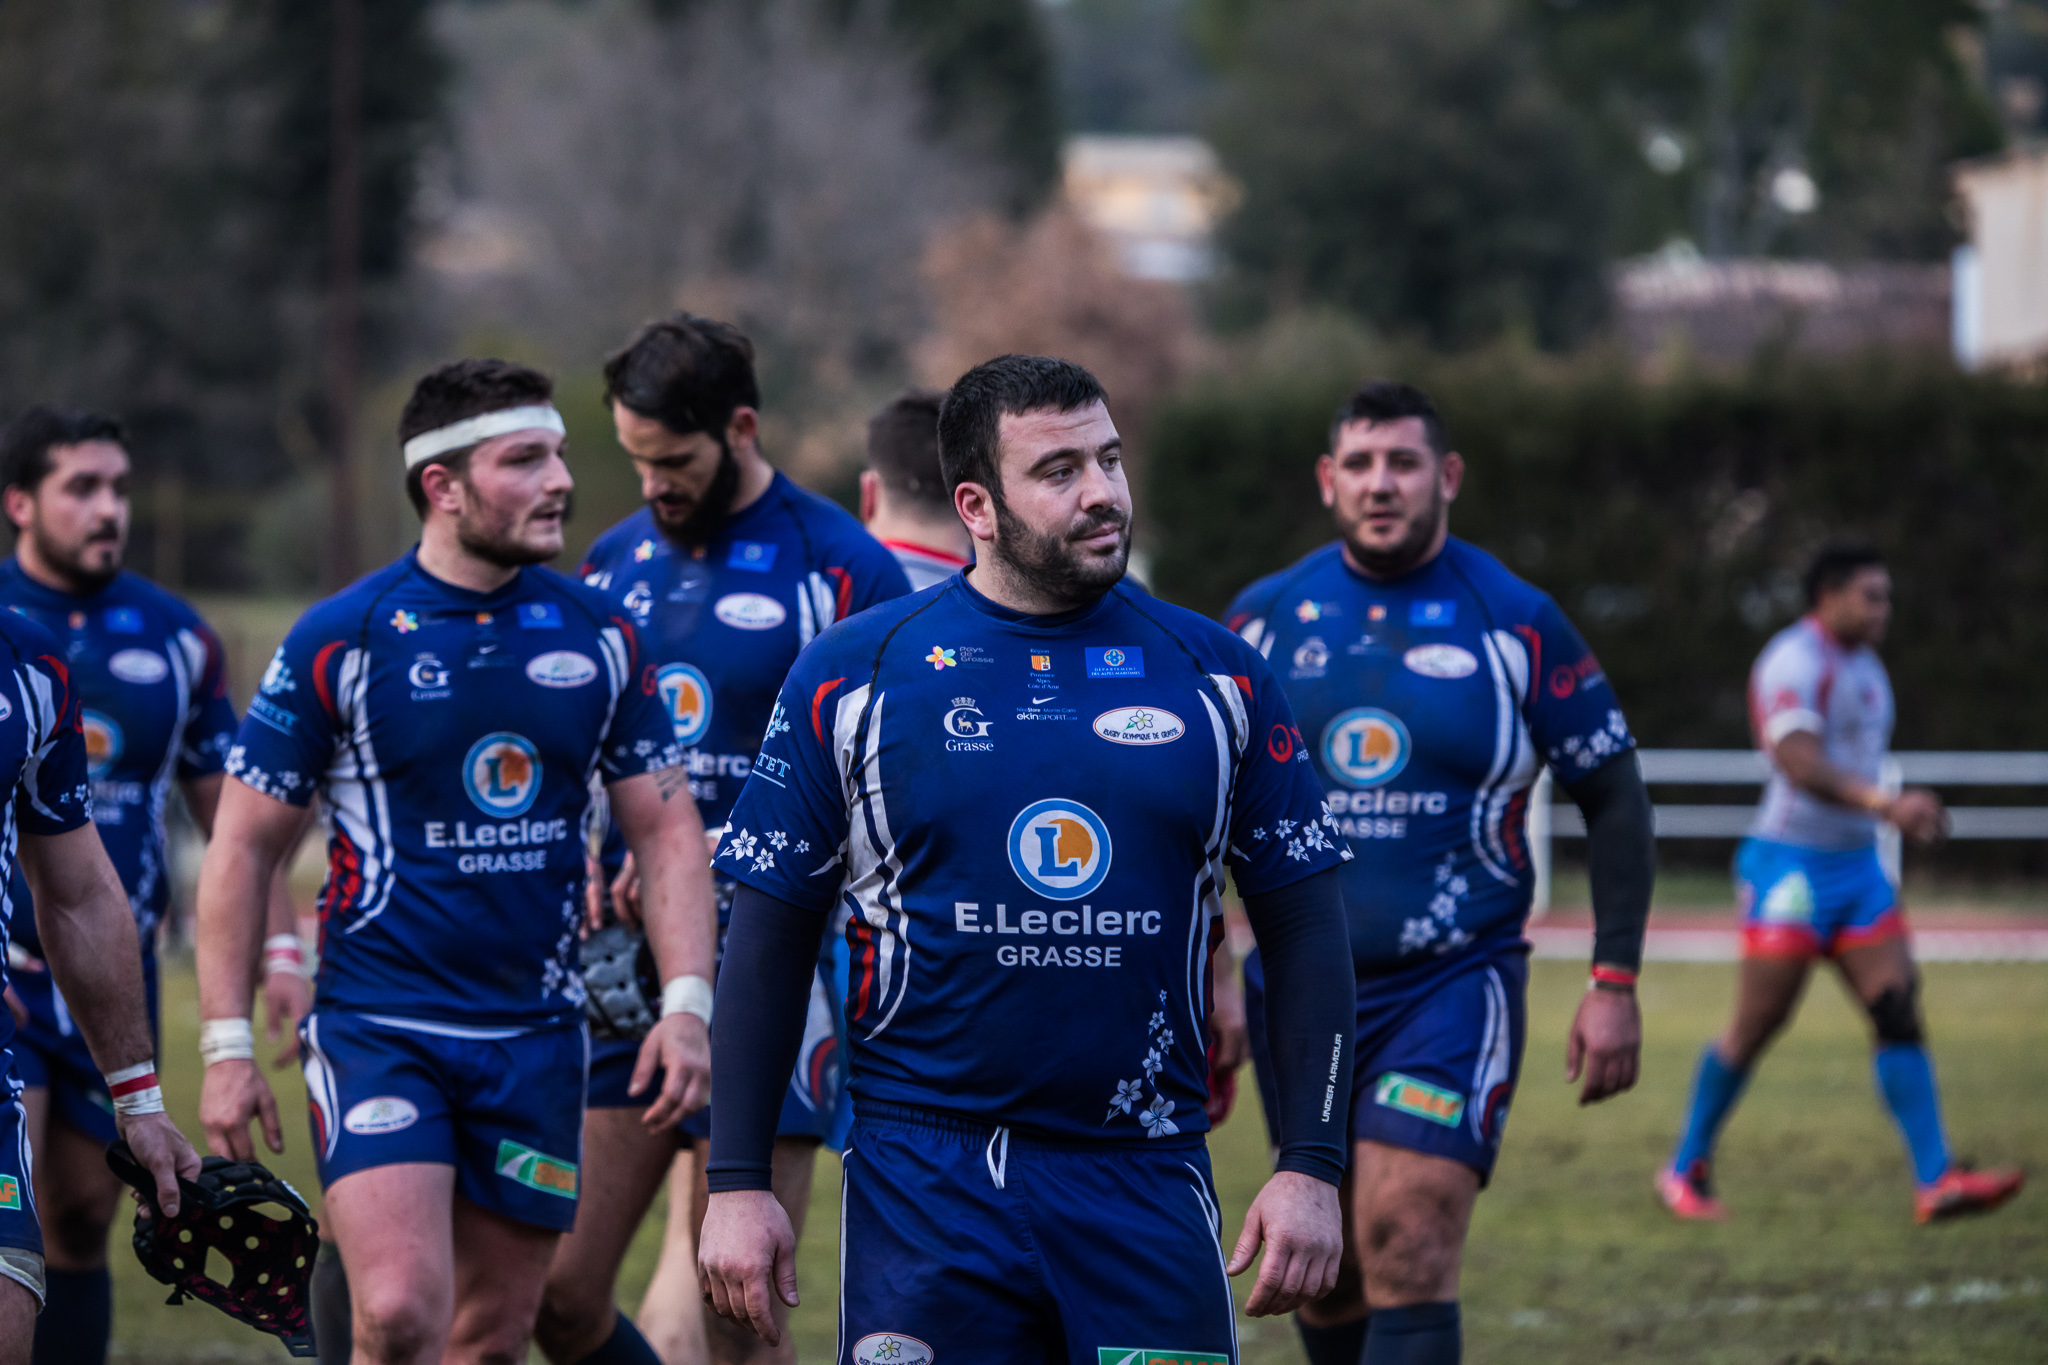 Rencontre rugby rencontre gay a strasbourg site rencontre